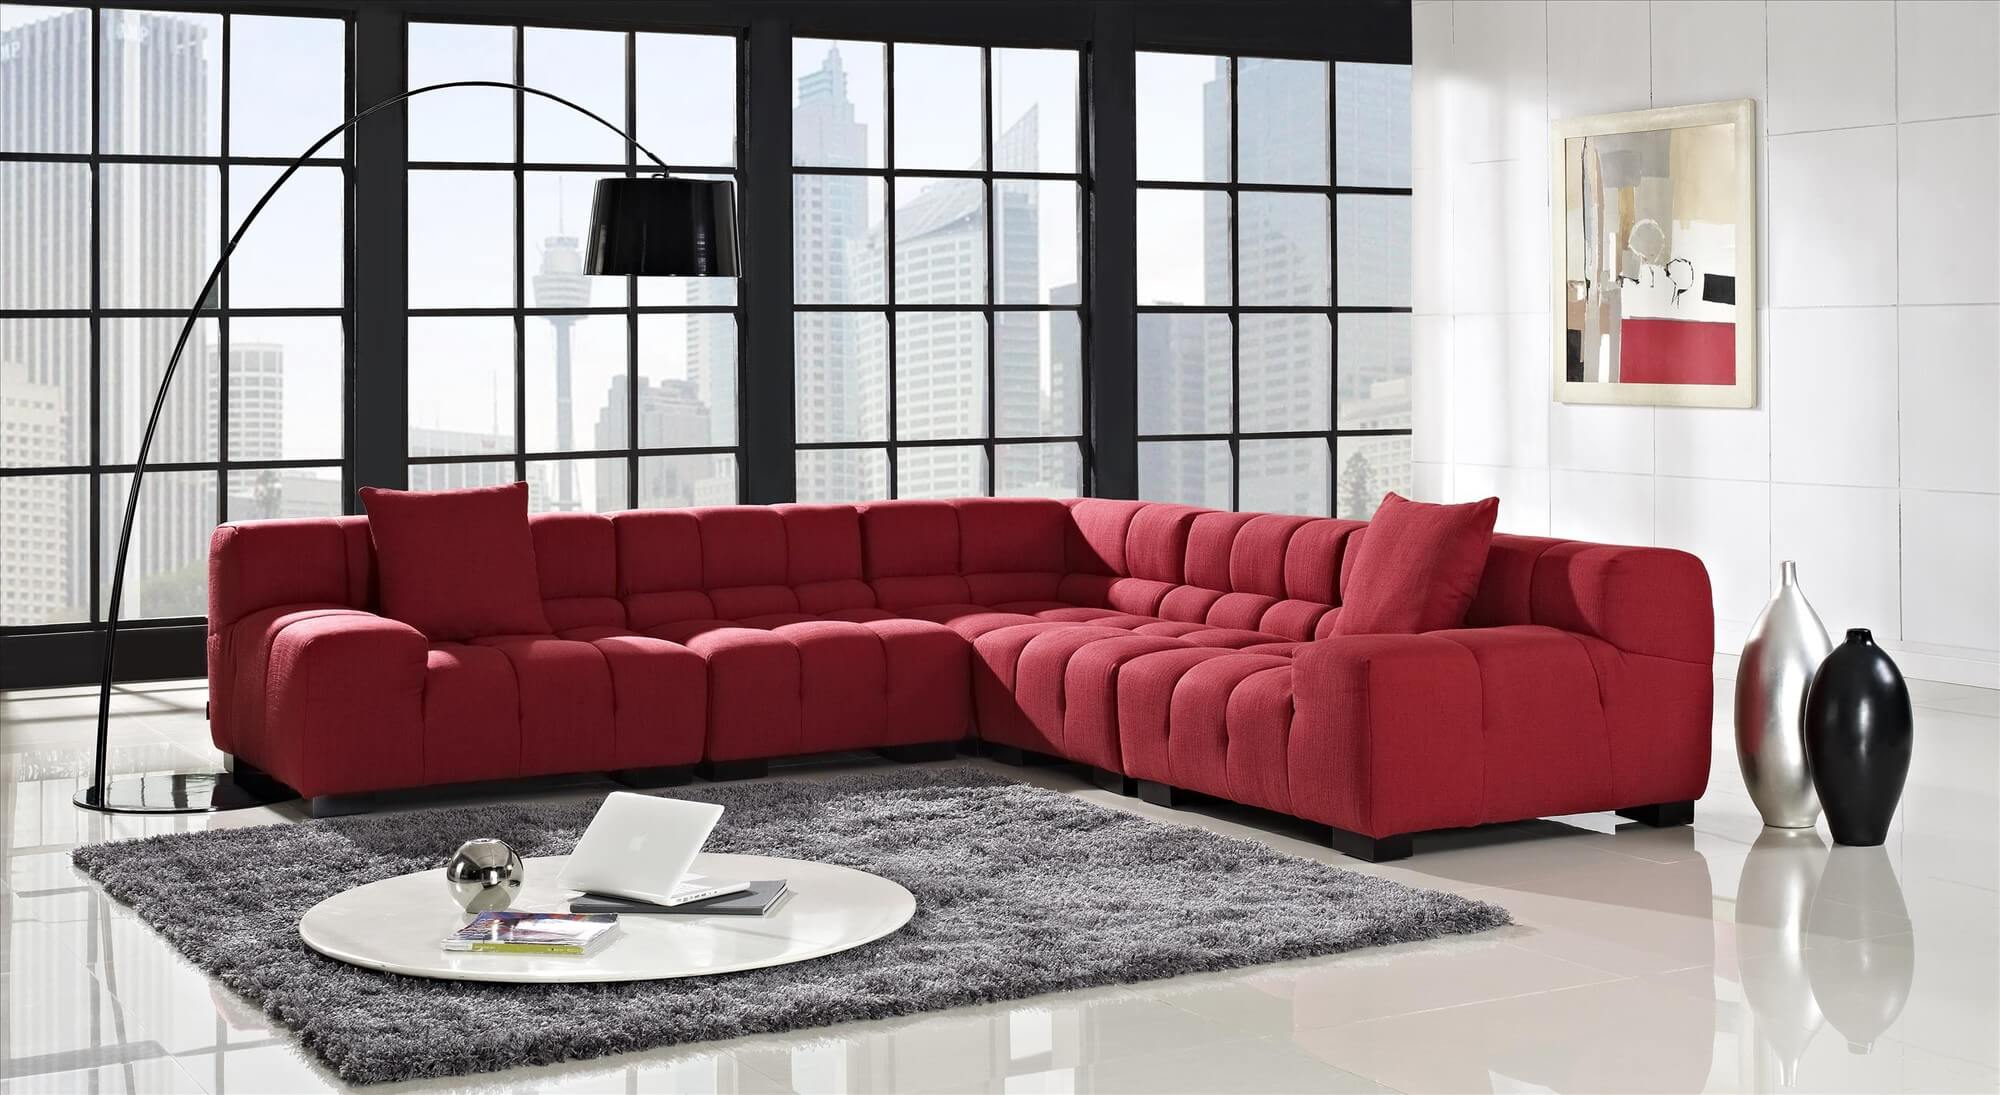 Amazing Creative Furniture Tufted Red Sectional red sectional sofa